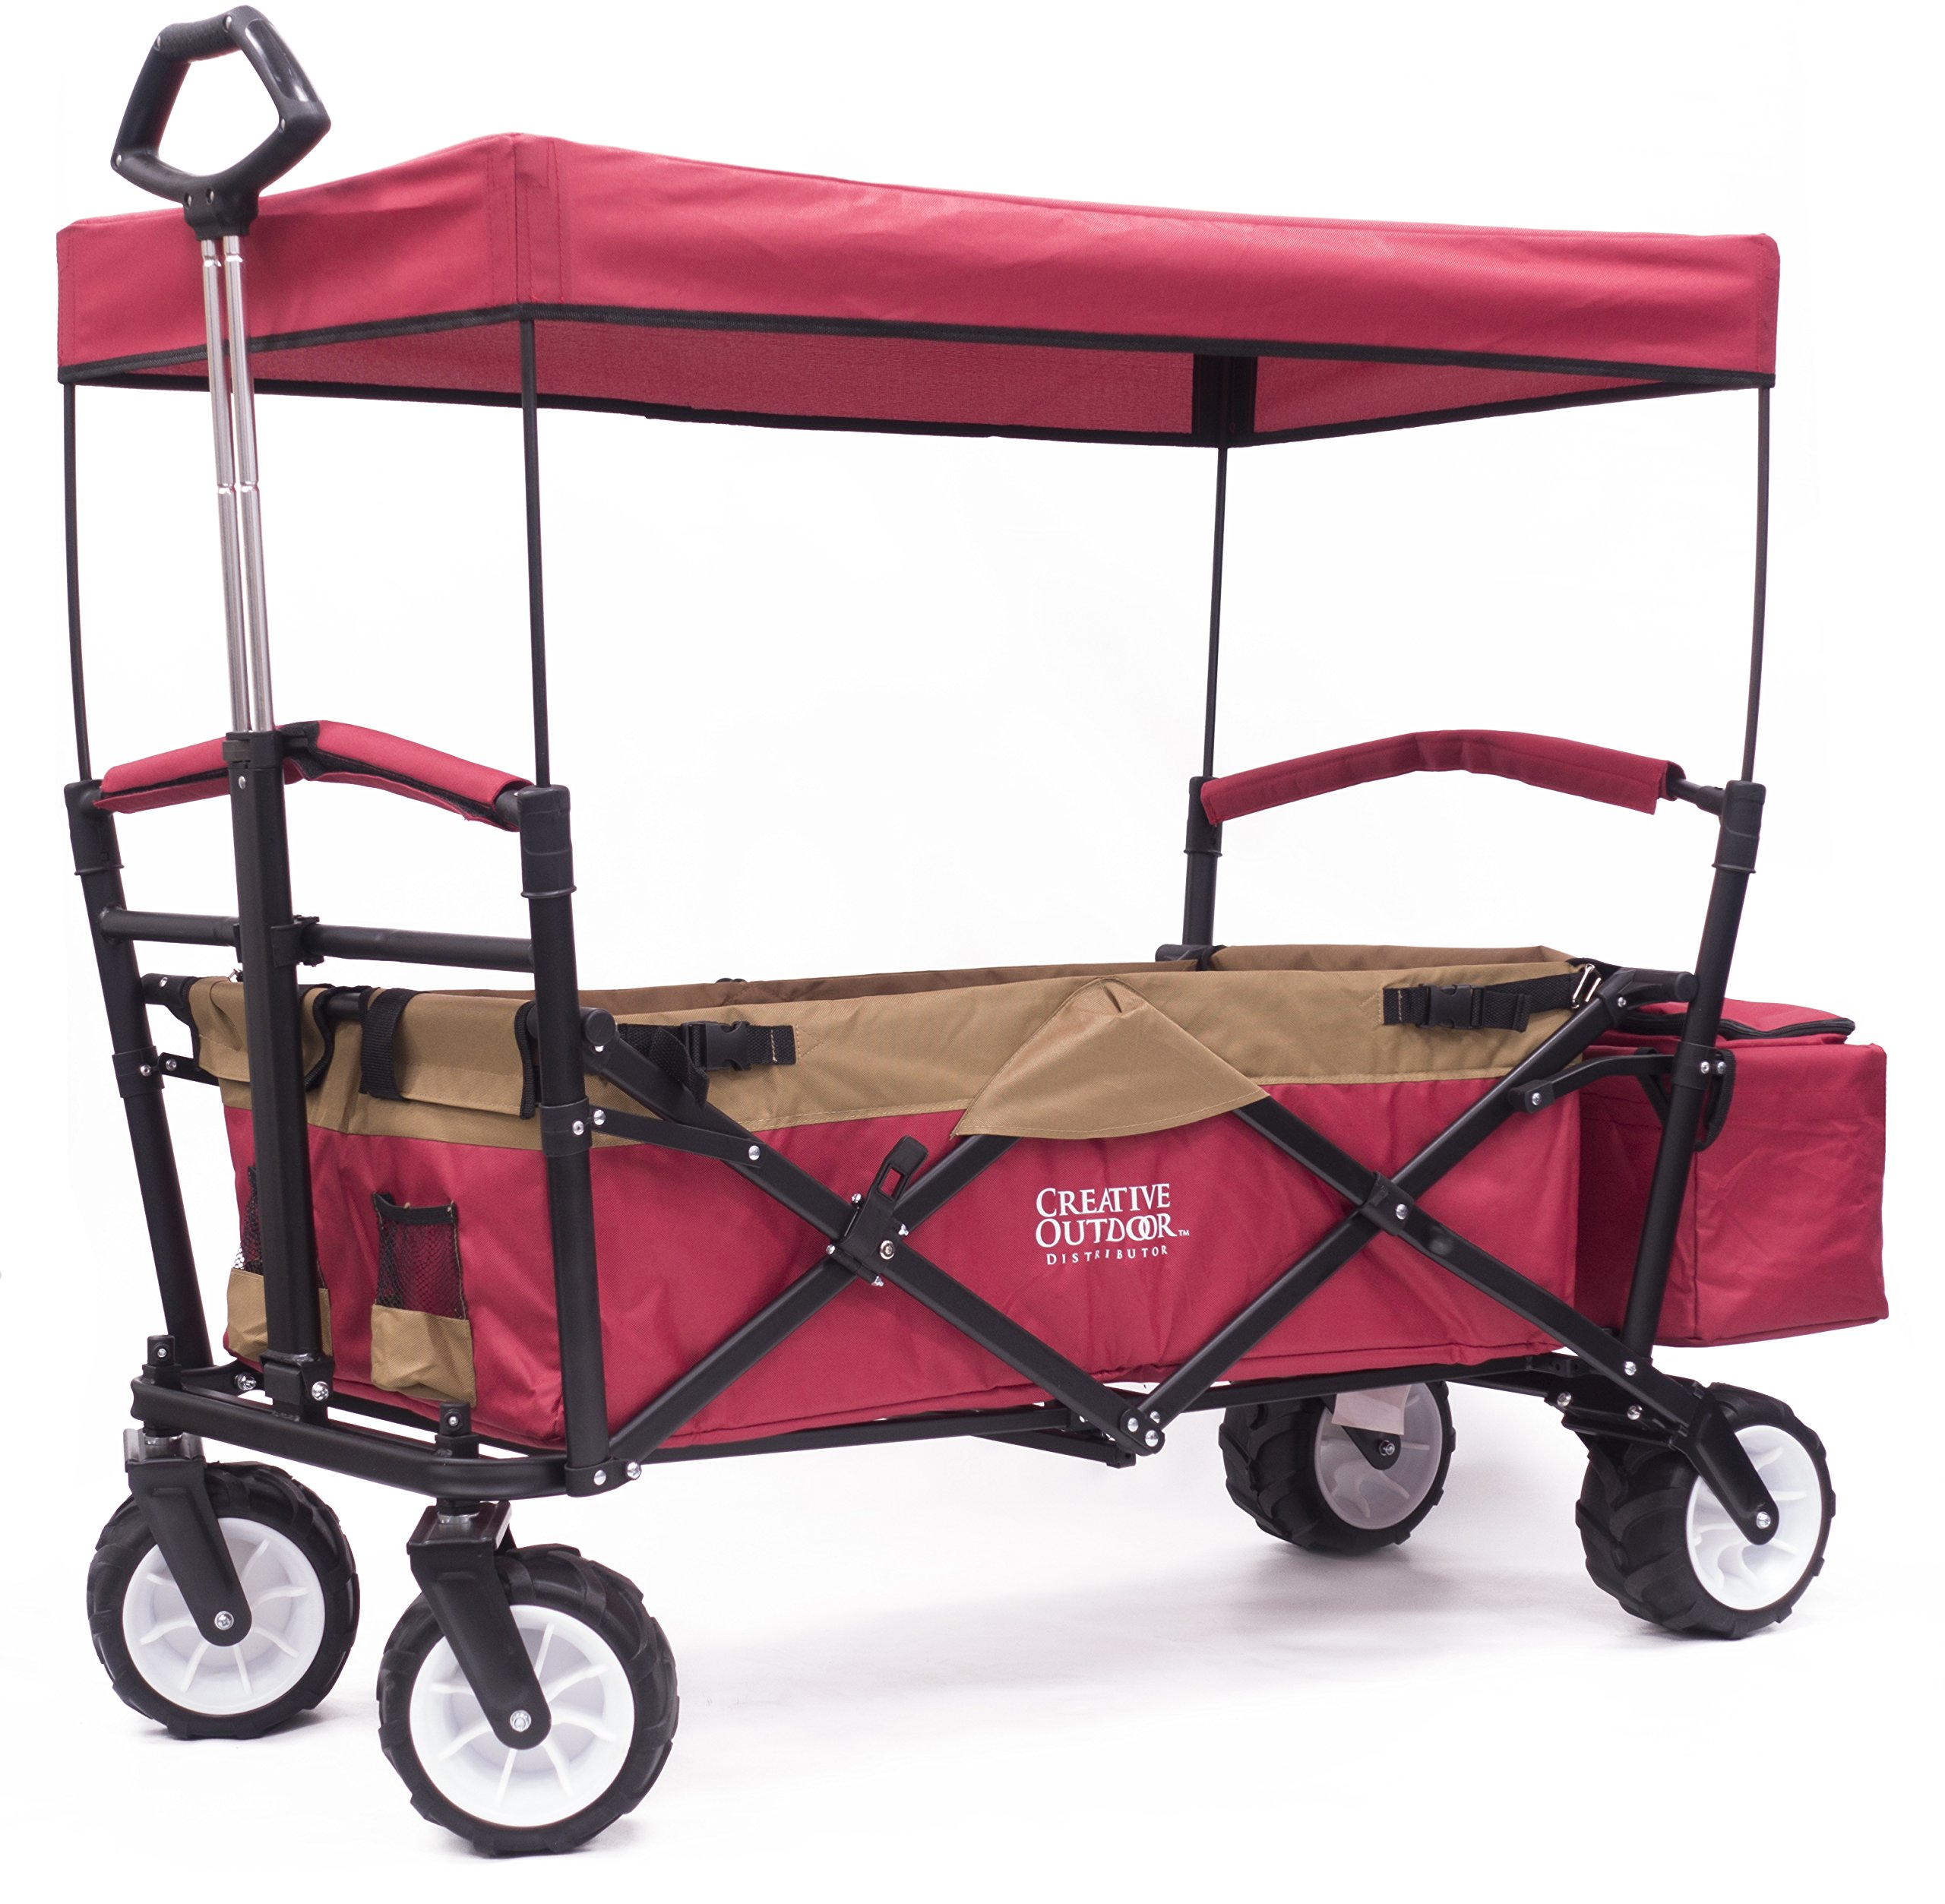 Folding SPORTS Wagon with All-Terrain Rubber Tires, Removable Canopy, and Storage Basket + FREE Cooler (Red/Gold) 900558